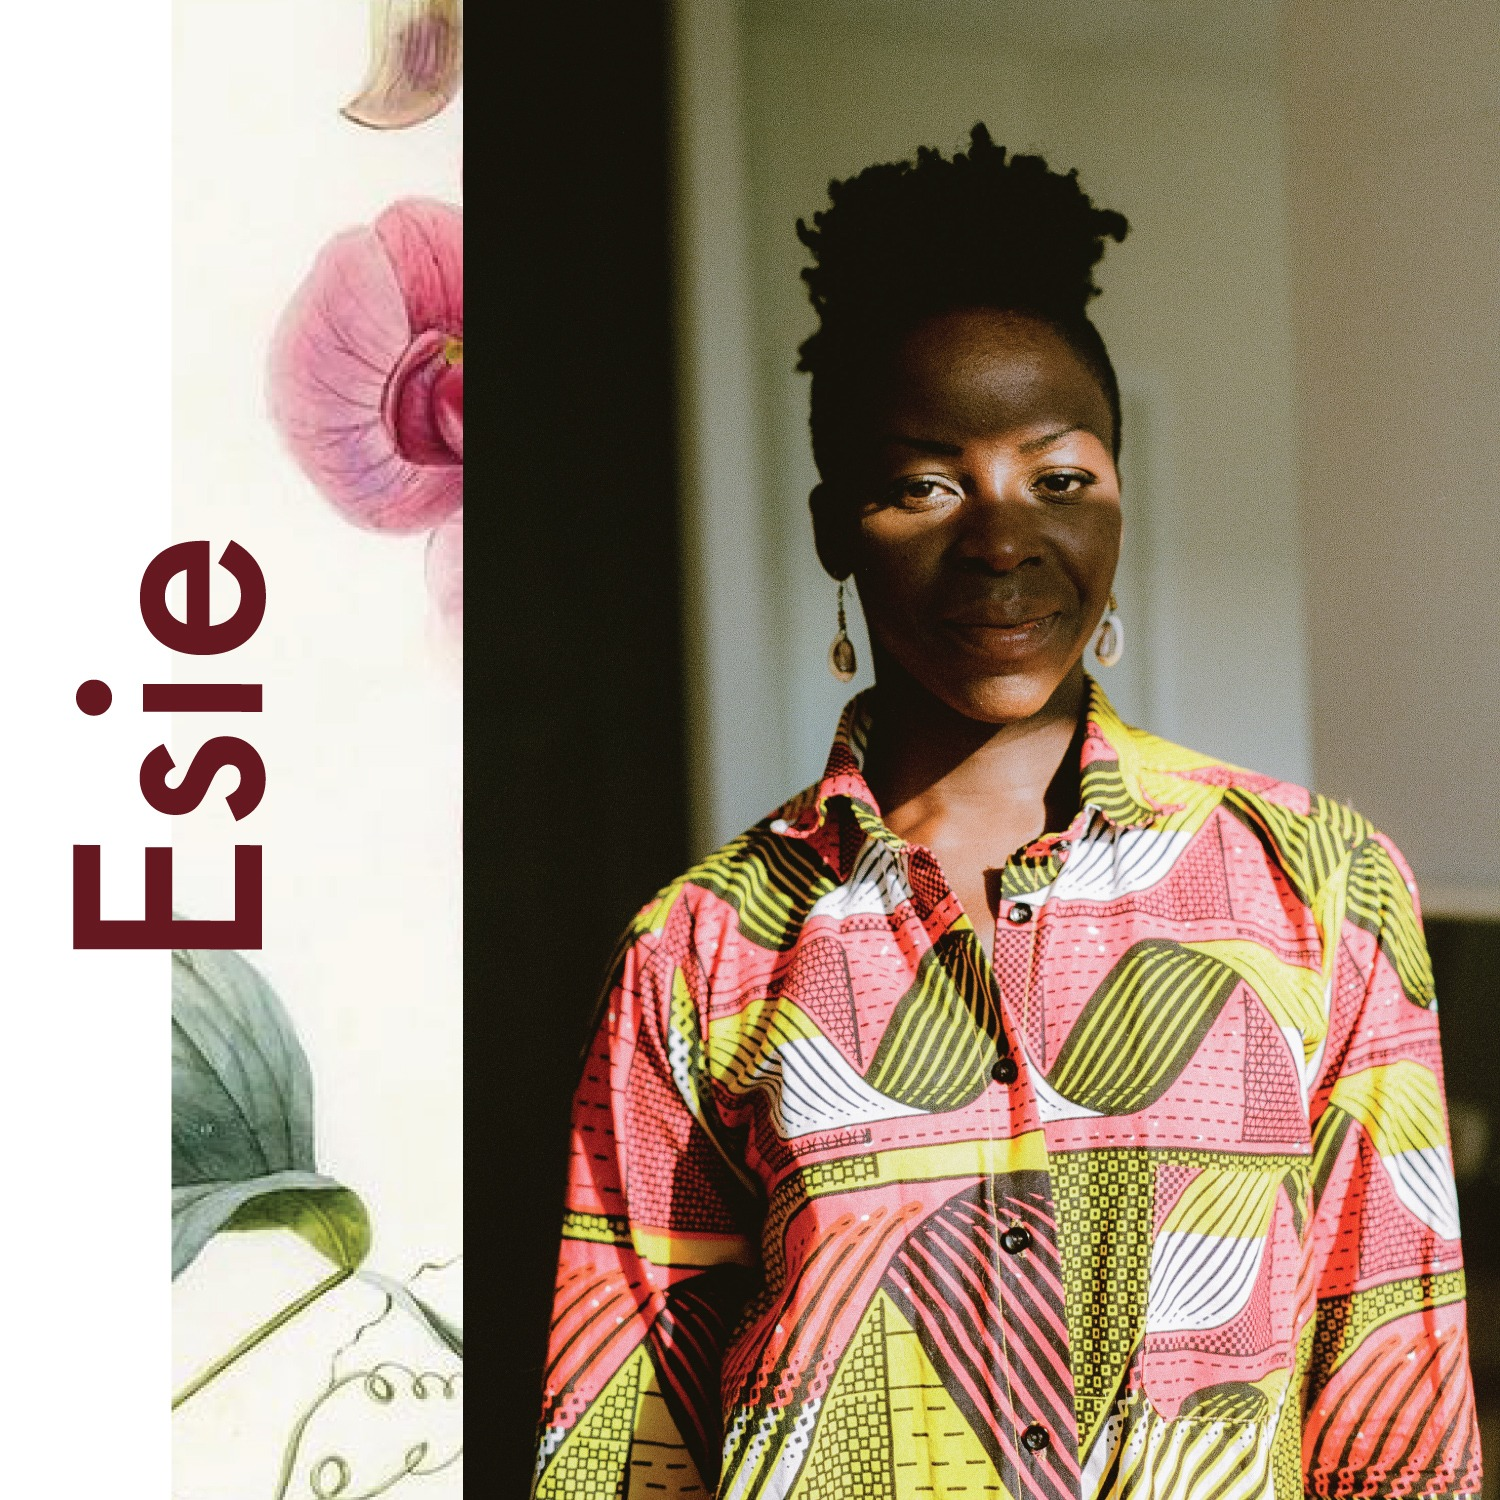 Esie Mensah on actively challenging our defaults